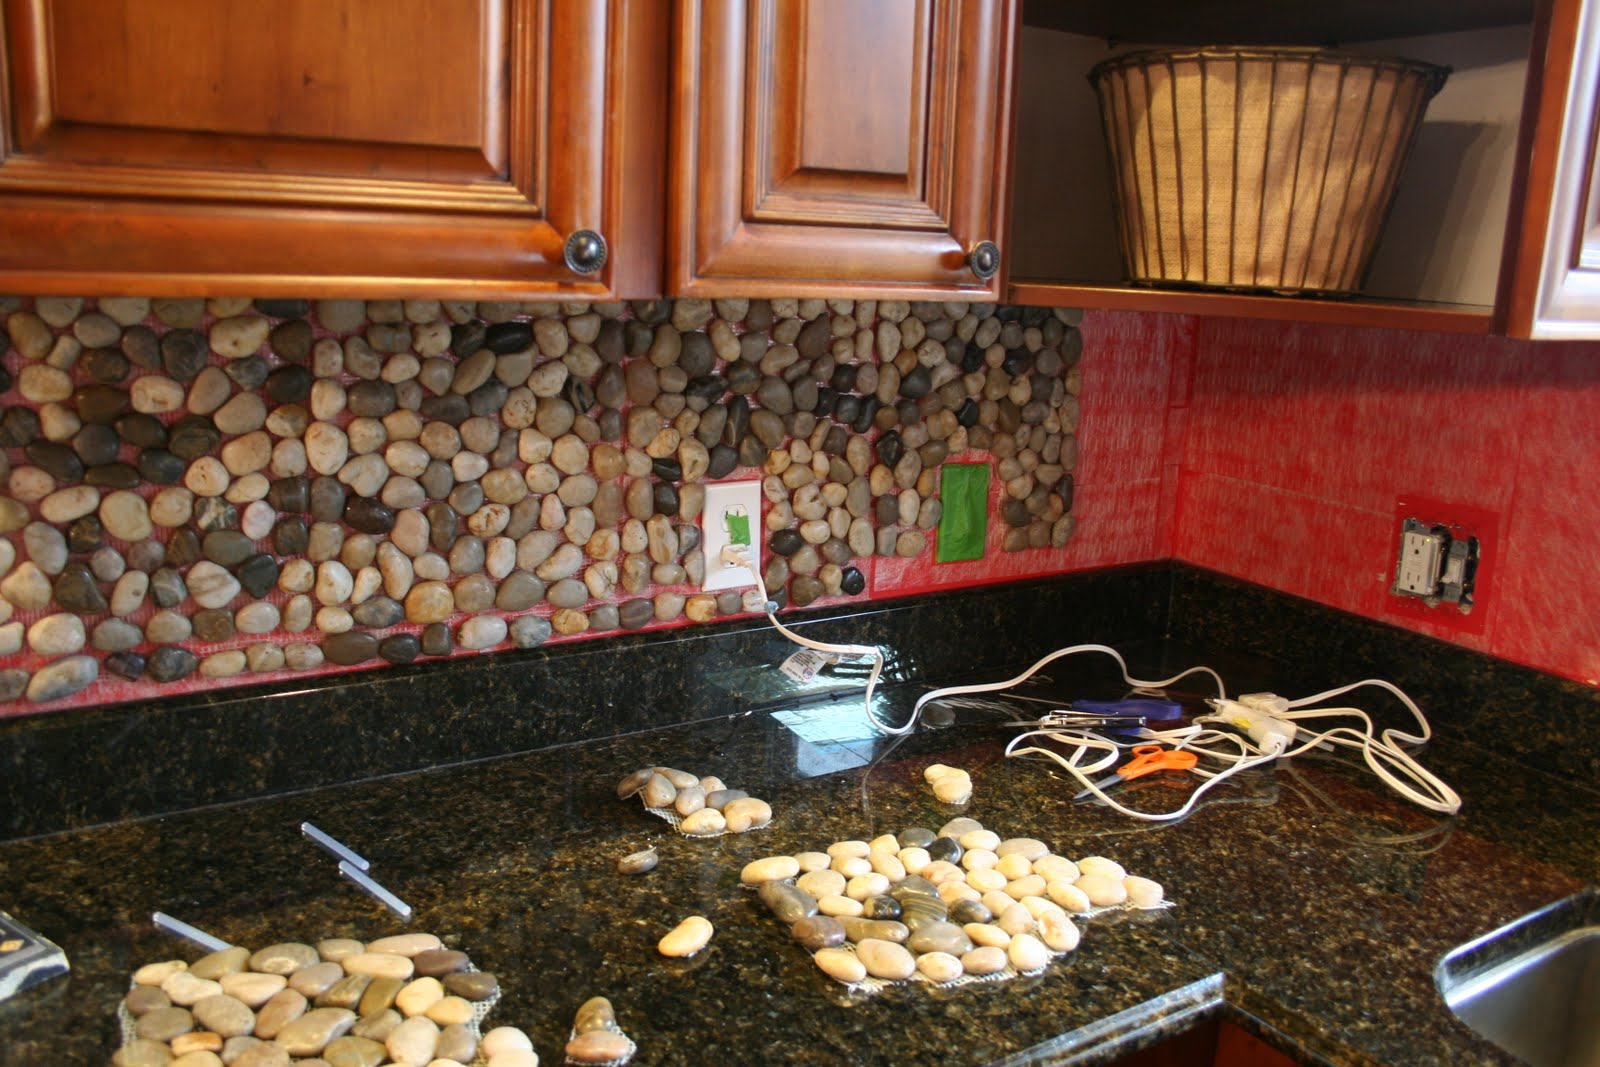 Garden stone kitchen backsplash tutorial how to backsplash home garden stone kitchen backsplash tutorial how to backsplash home stories a to z solutioingenieria Images